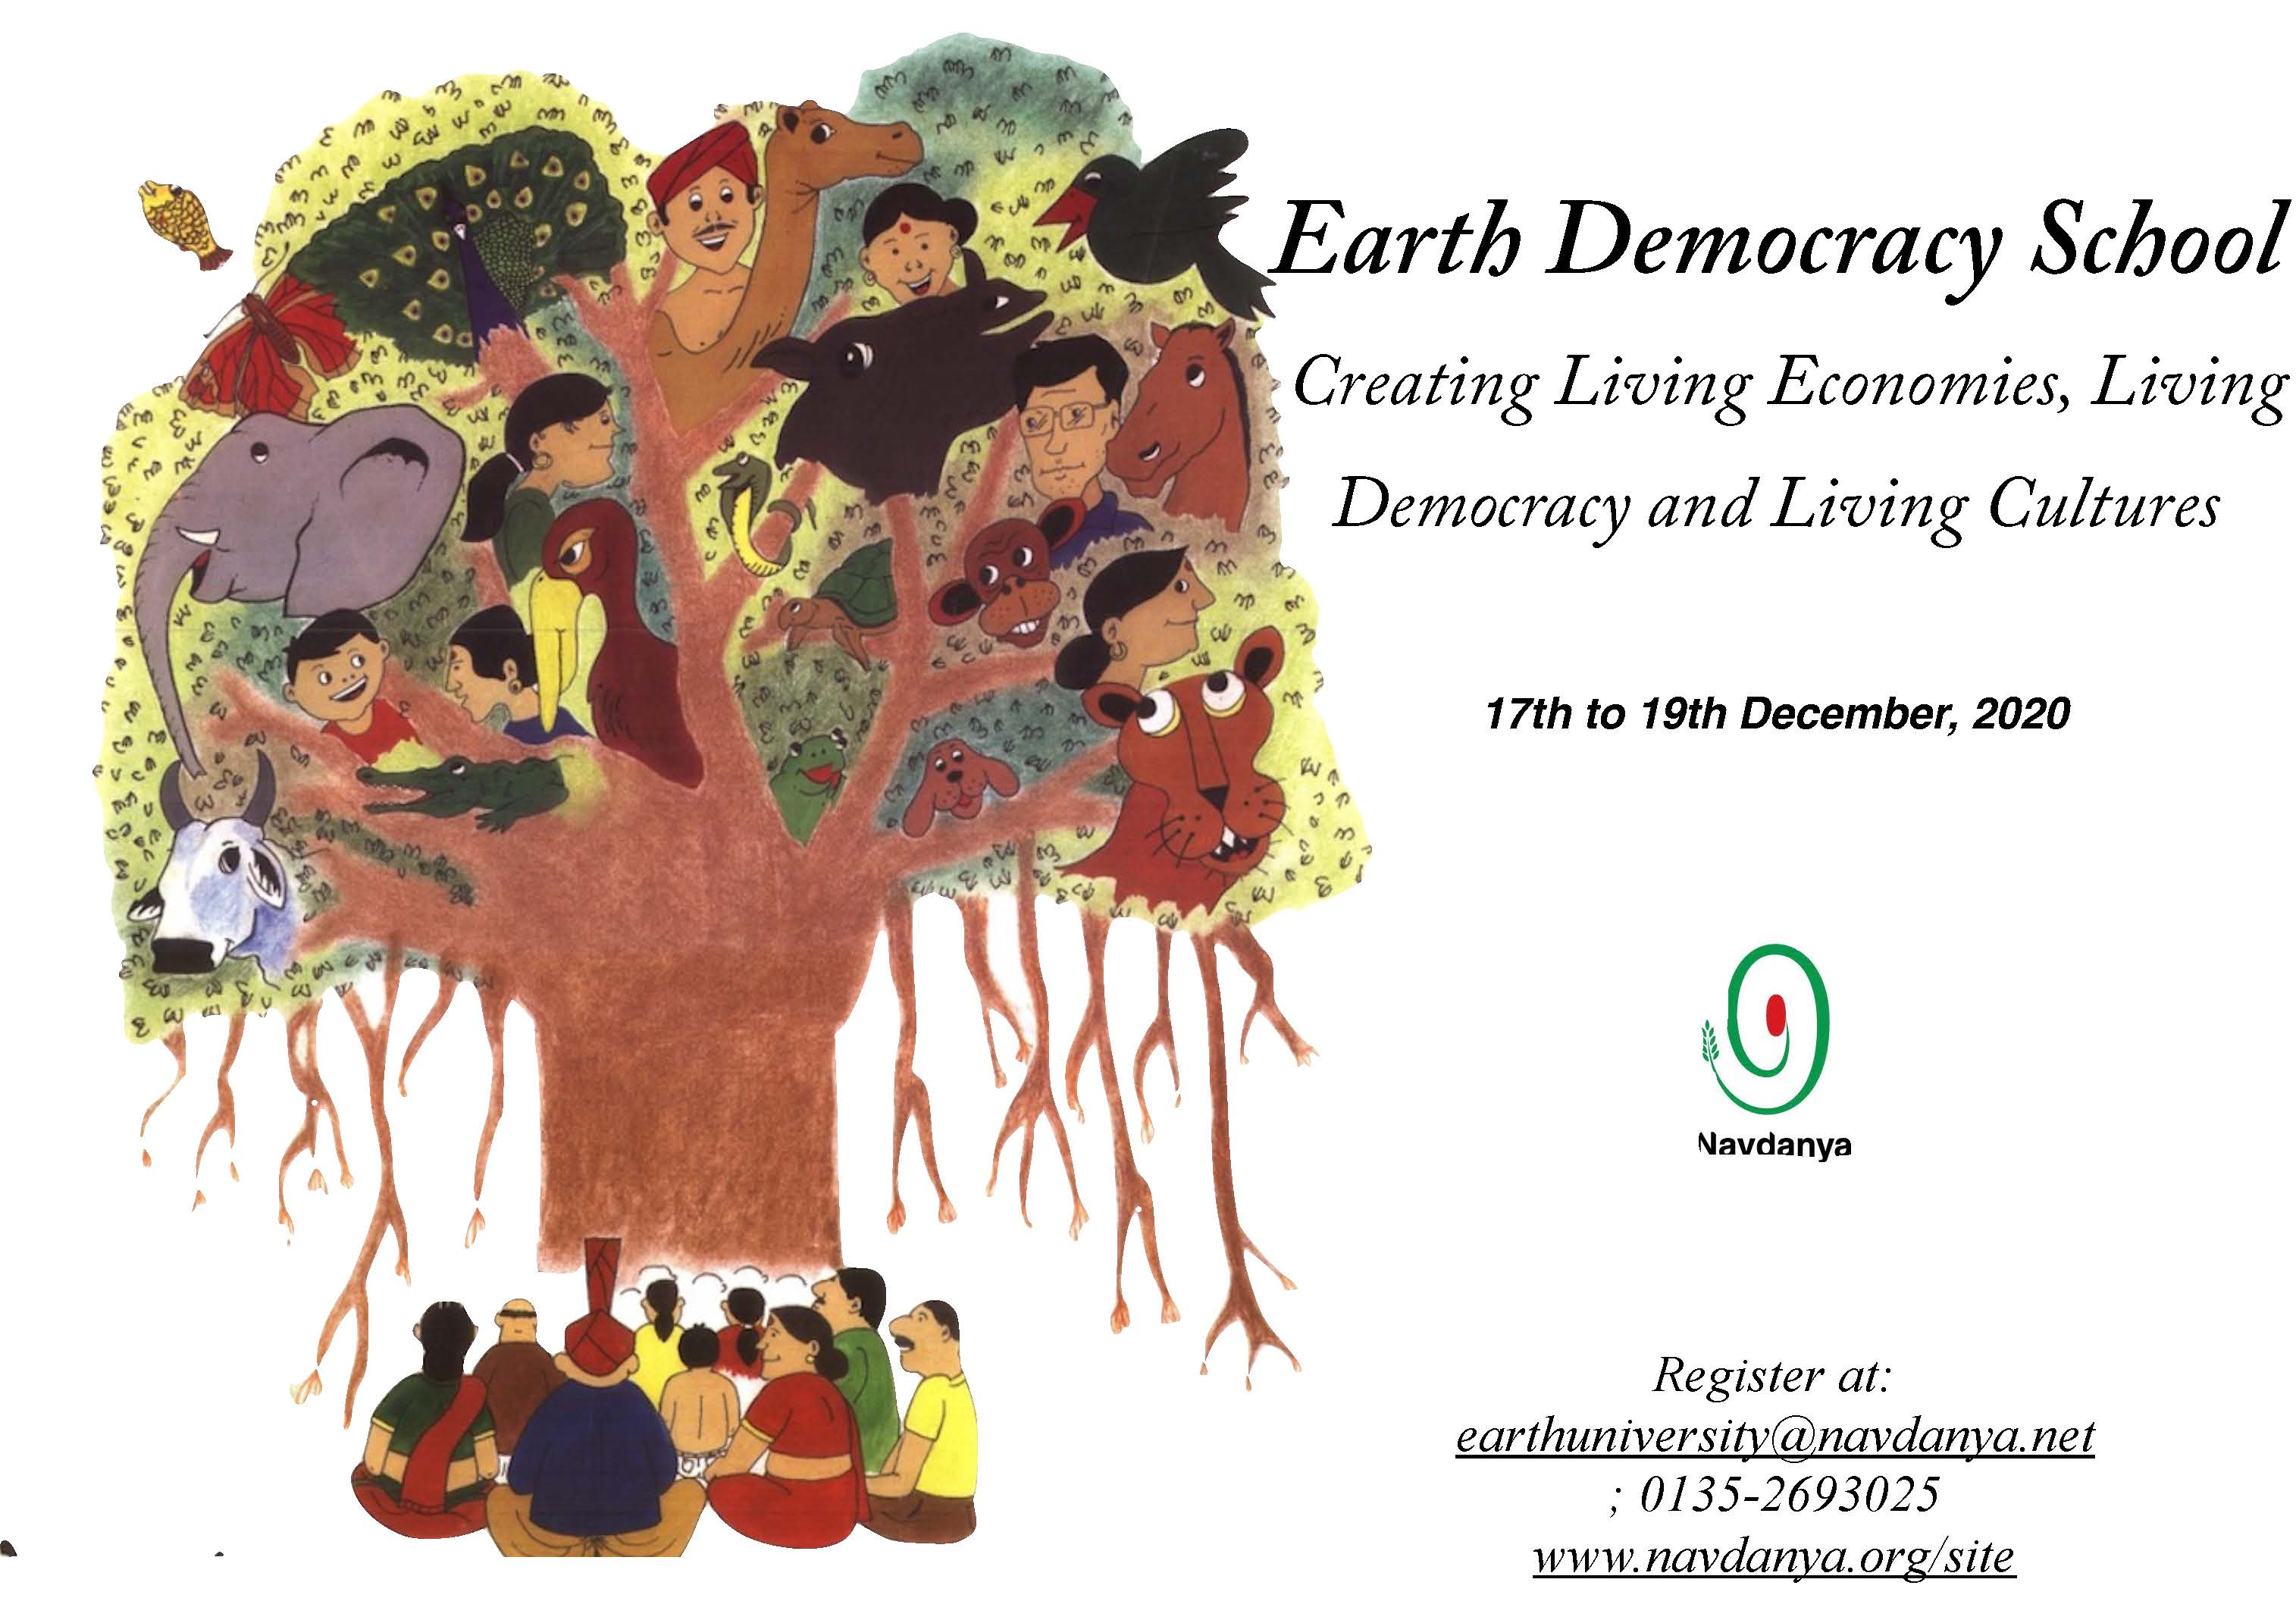 Earth Democracy School: Creating Living Economies, Living Democracy and Living Cultures